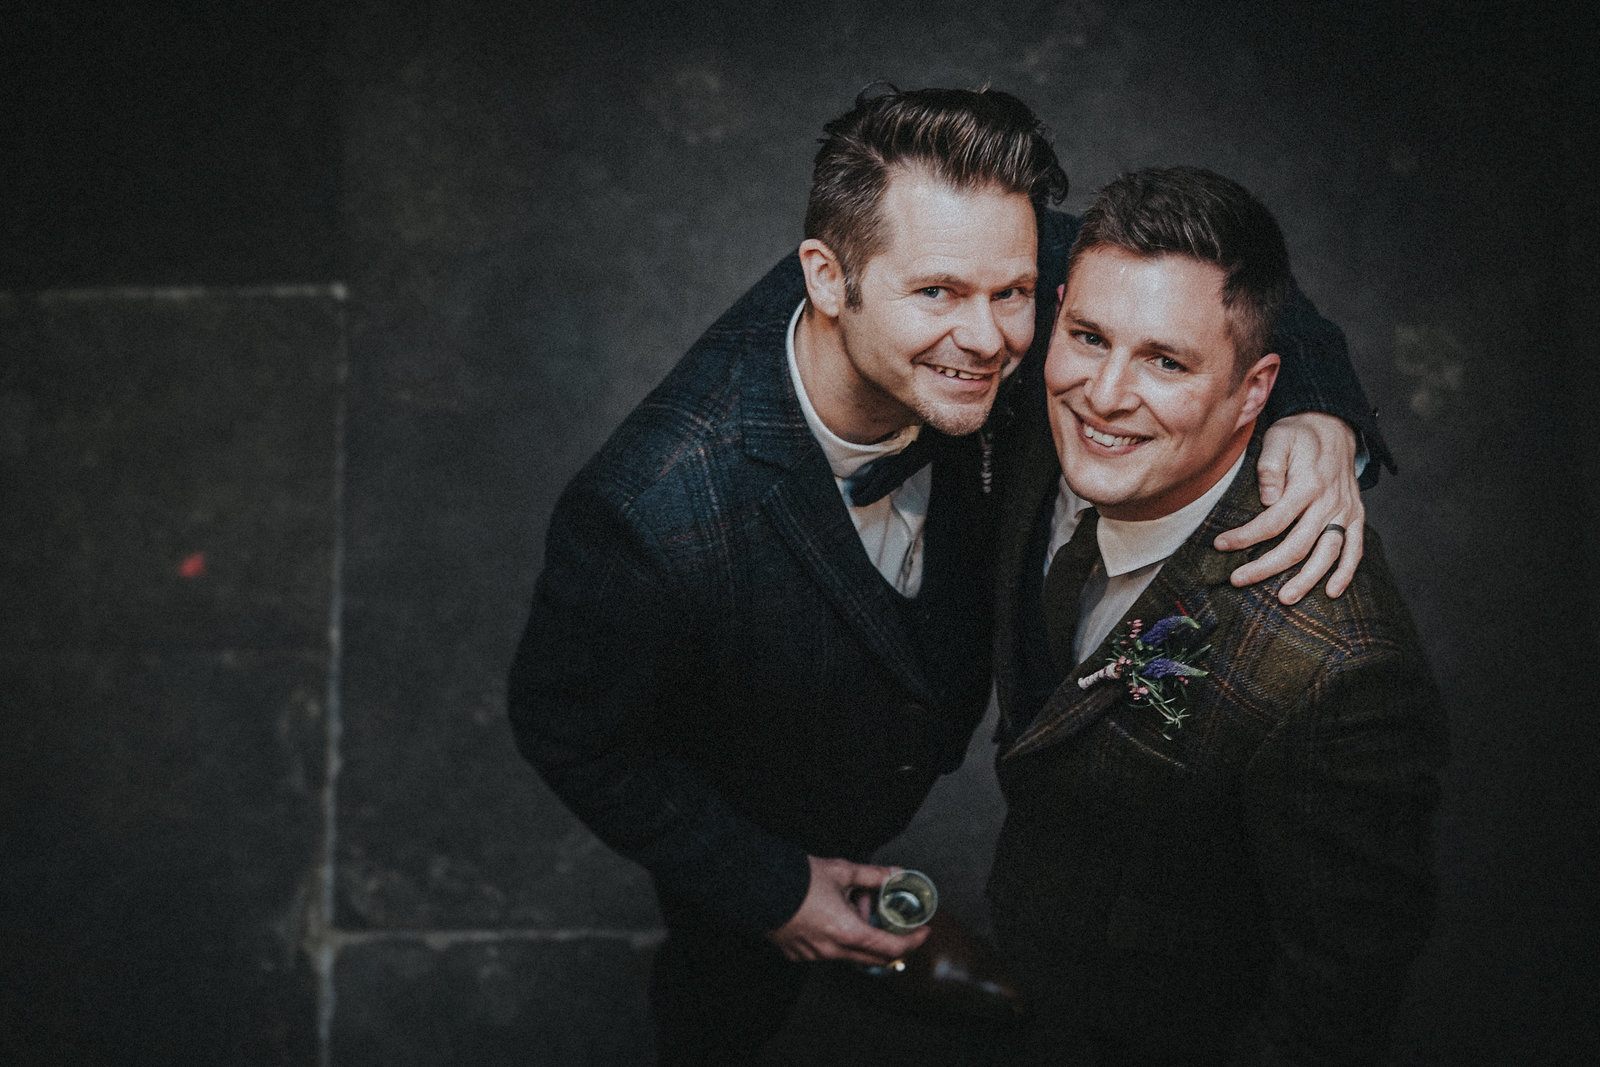 Grooms looking up smiling - LGBT Wedding Photographer - Jono Symonds